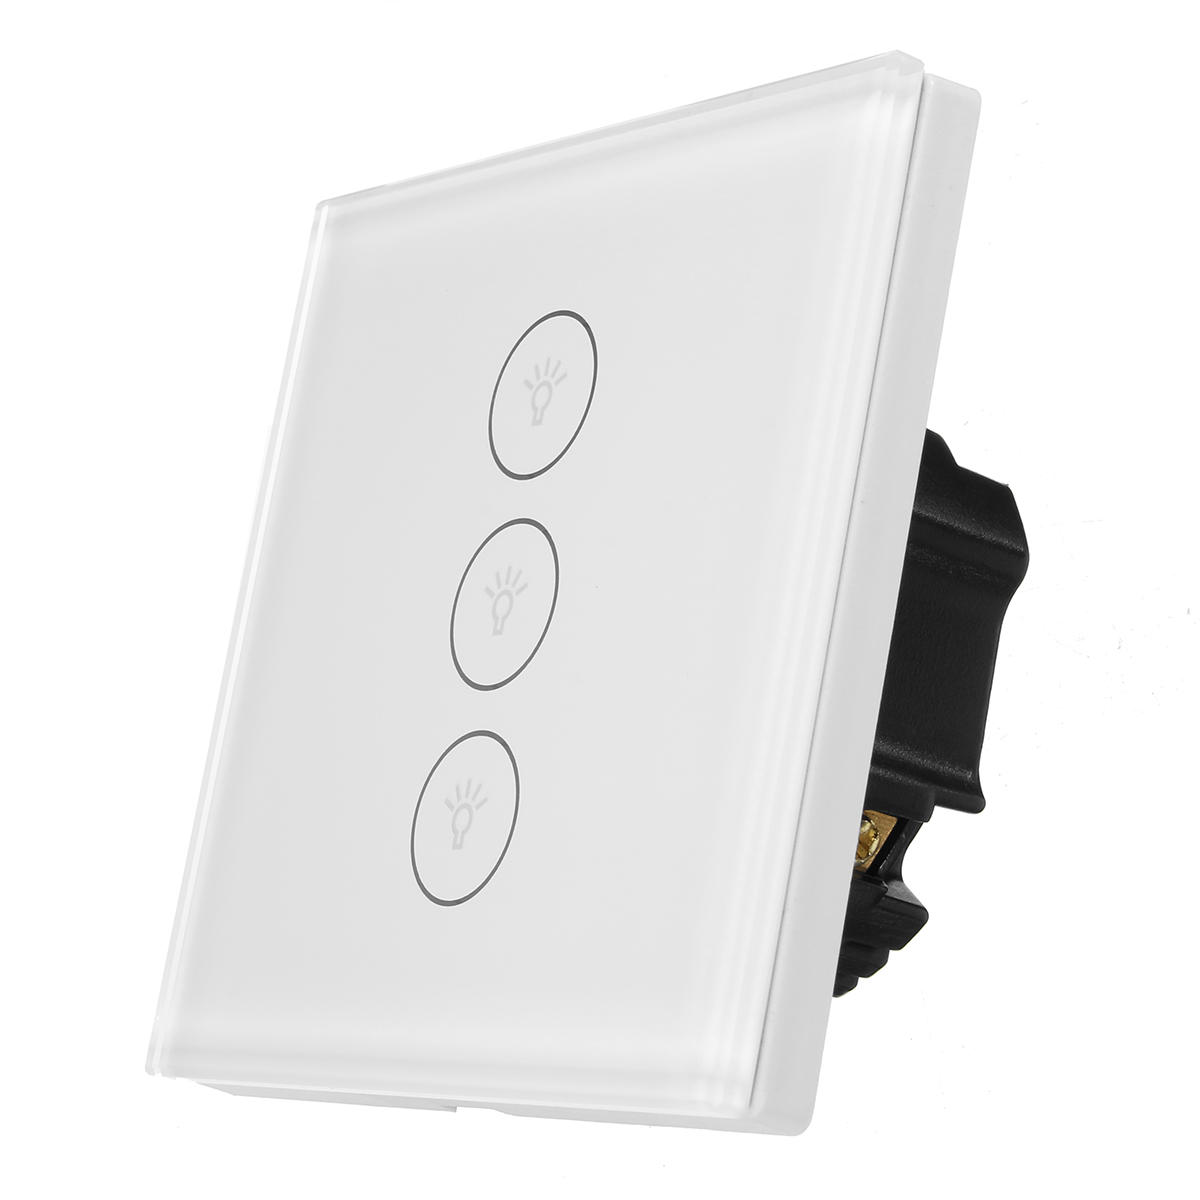 Excellway WIFI Smart Wall EU Switch Touch Panel APP Control With Alexa/Google Home